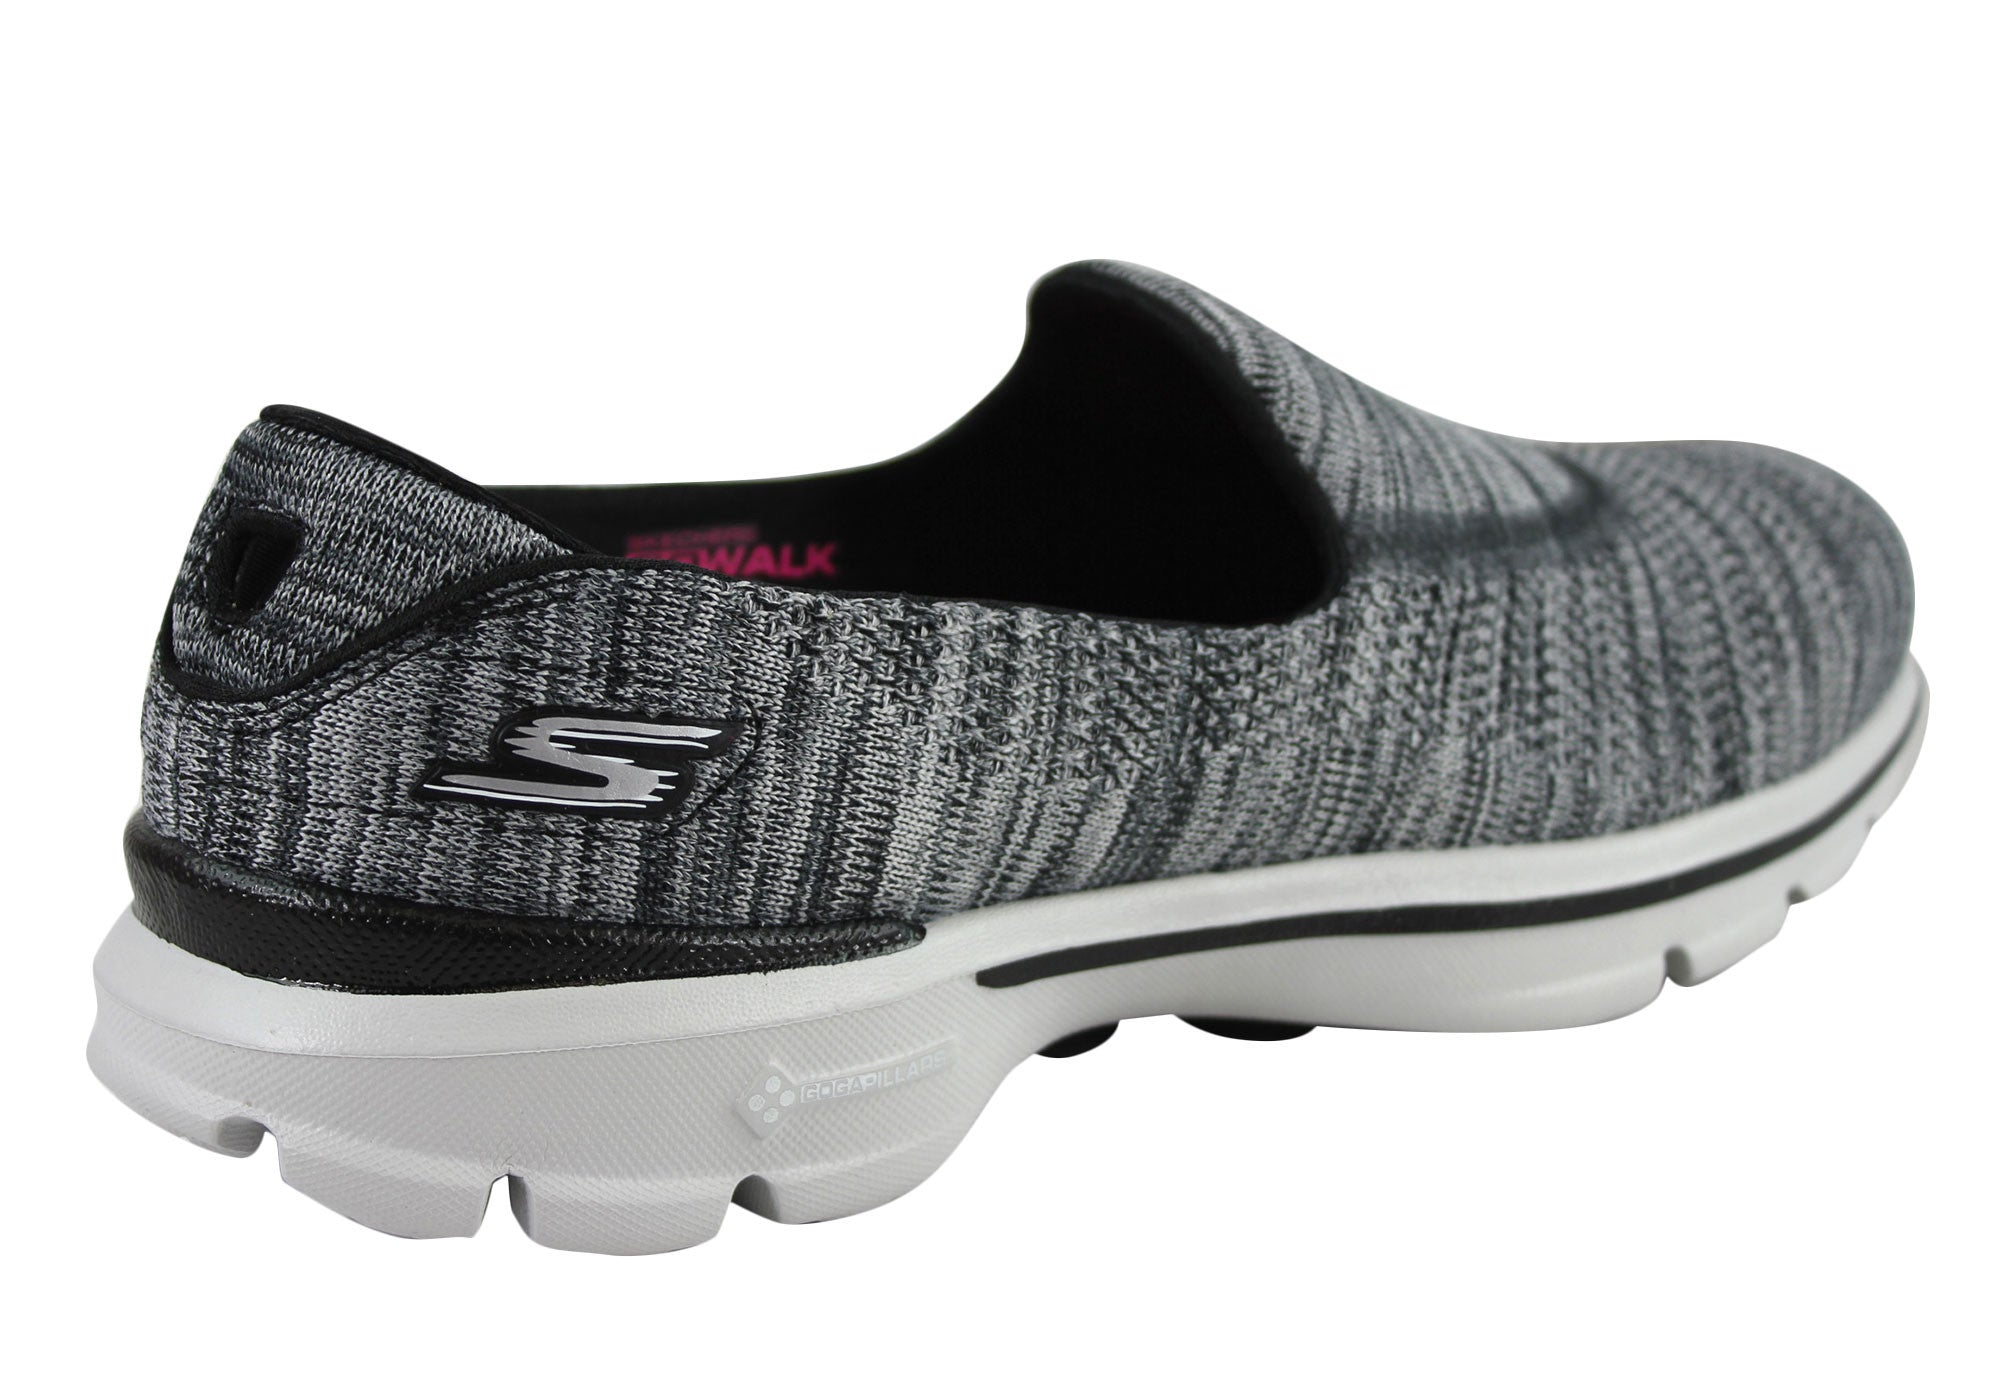 f74f535f4b39 Skechers Go Walk 3 Fitnit Extreme Womens Casual Slip On Shoes 13987 ...